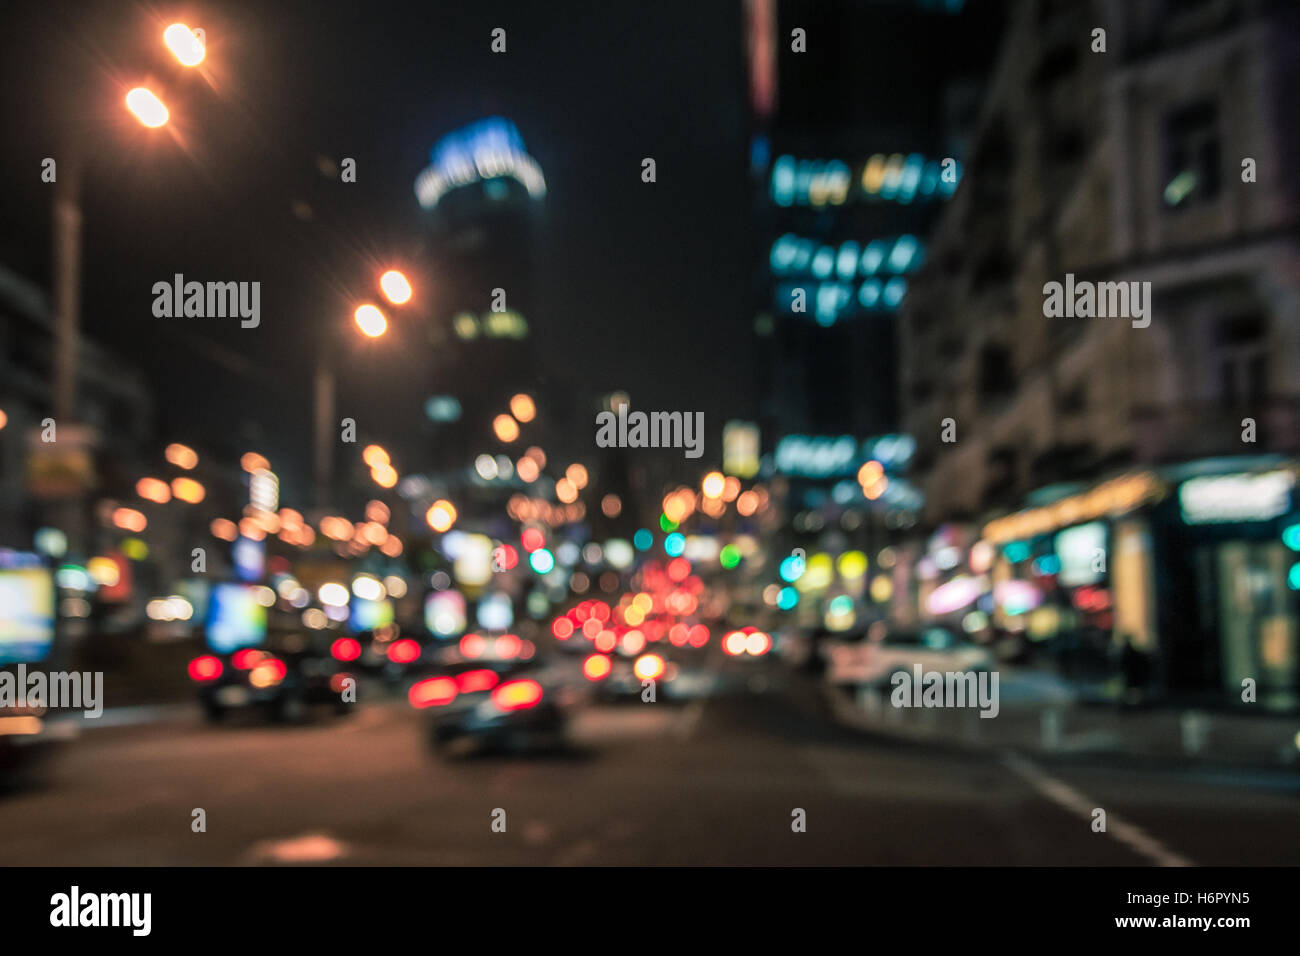 Blurred glowing skyscrapers and cars. Night city street  lights background - Stock Image